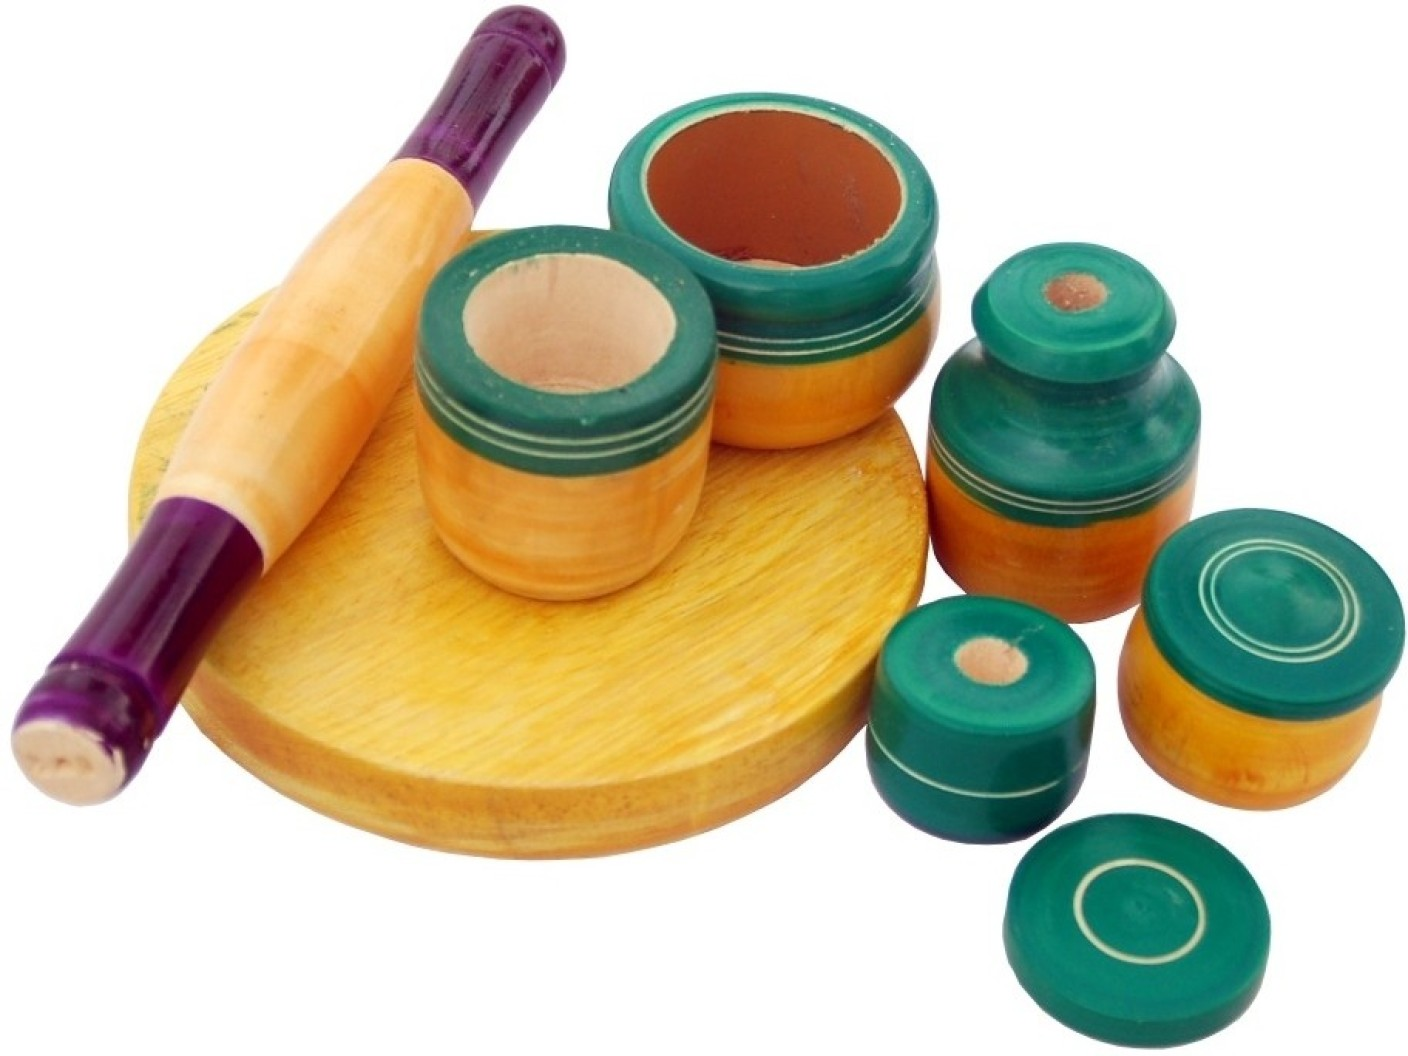 Villcart wooden toy kitchen set green wooden toy kitchen for Kitchen set from the 90 s